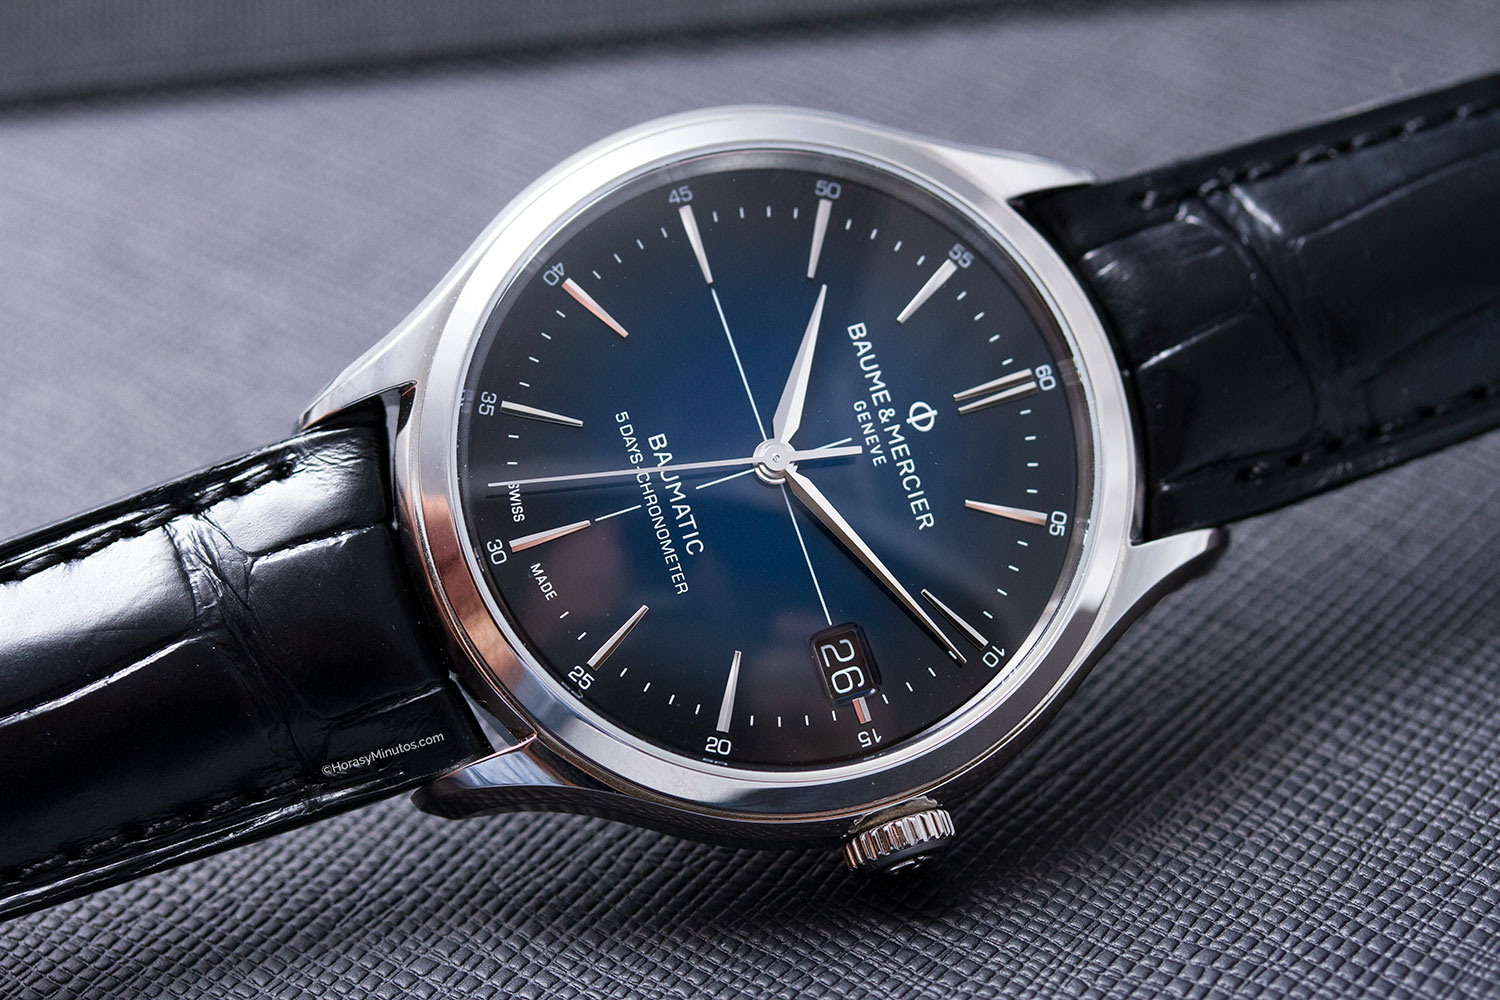 Baume & Mercier Clifton Baumatic Esfera Azul